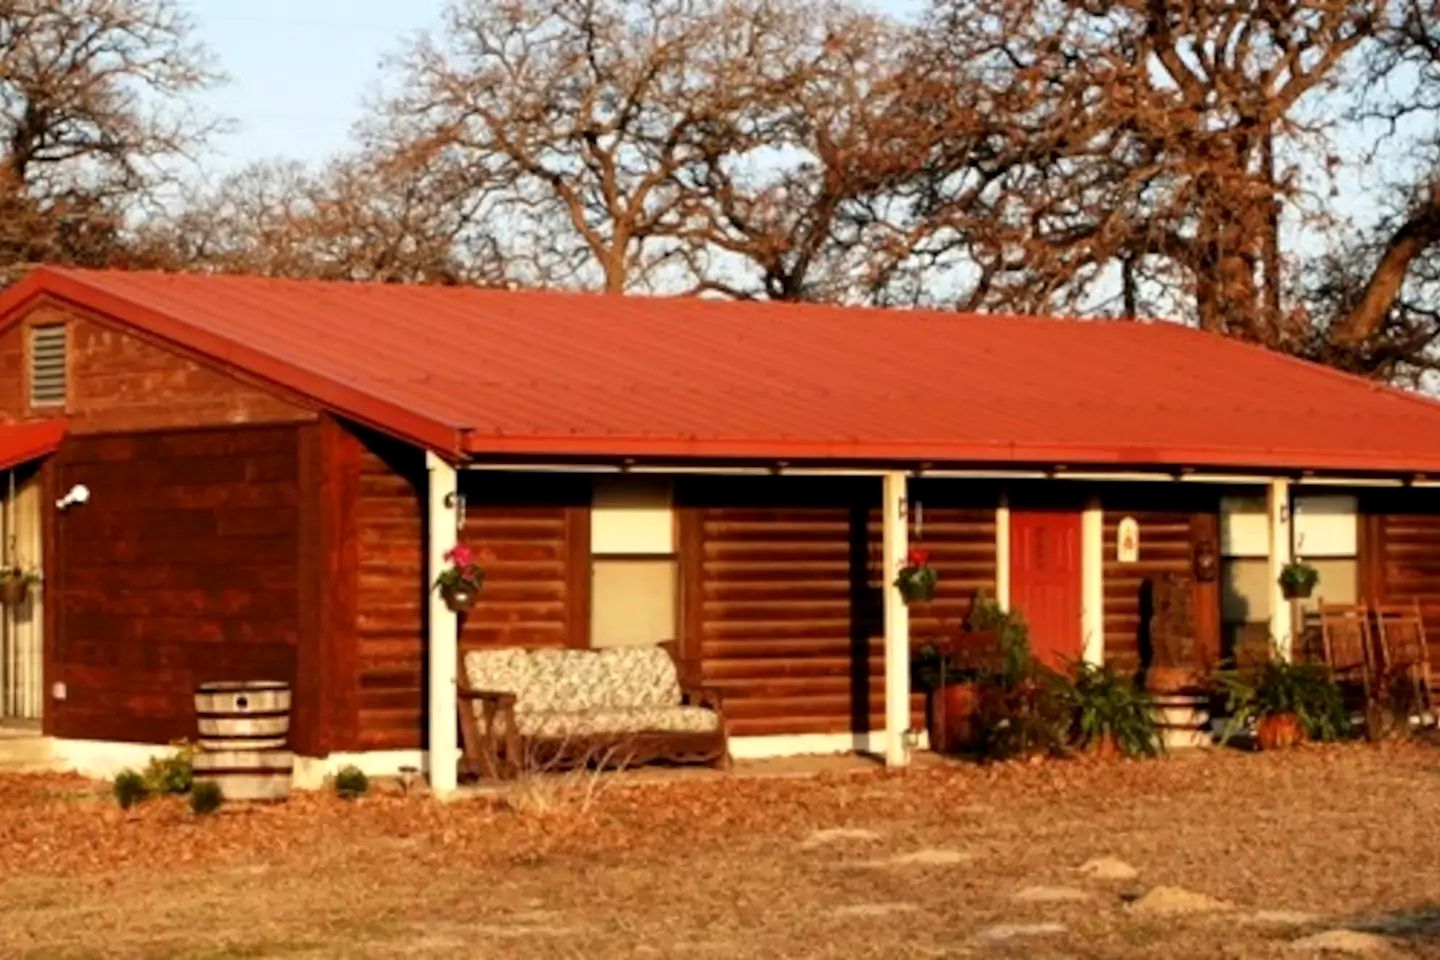 Nature Lodges (McDade, Texas, United States)